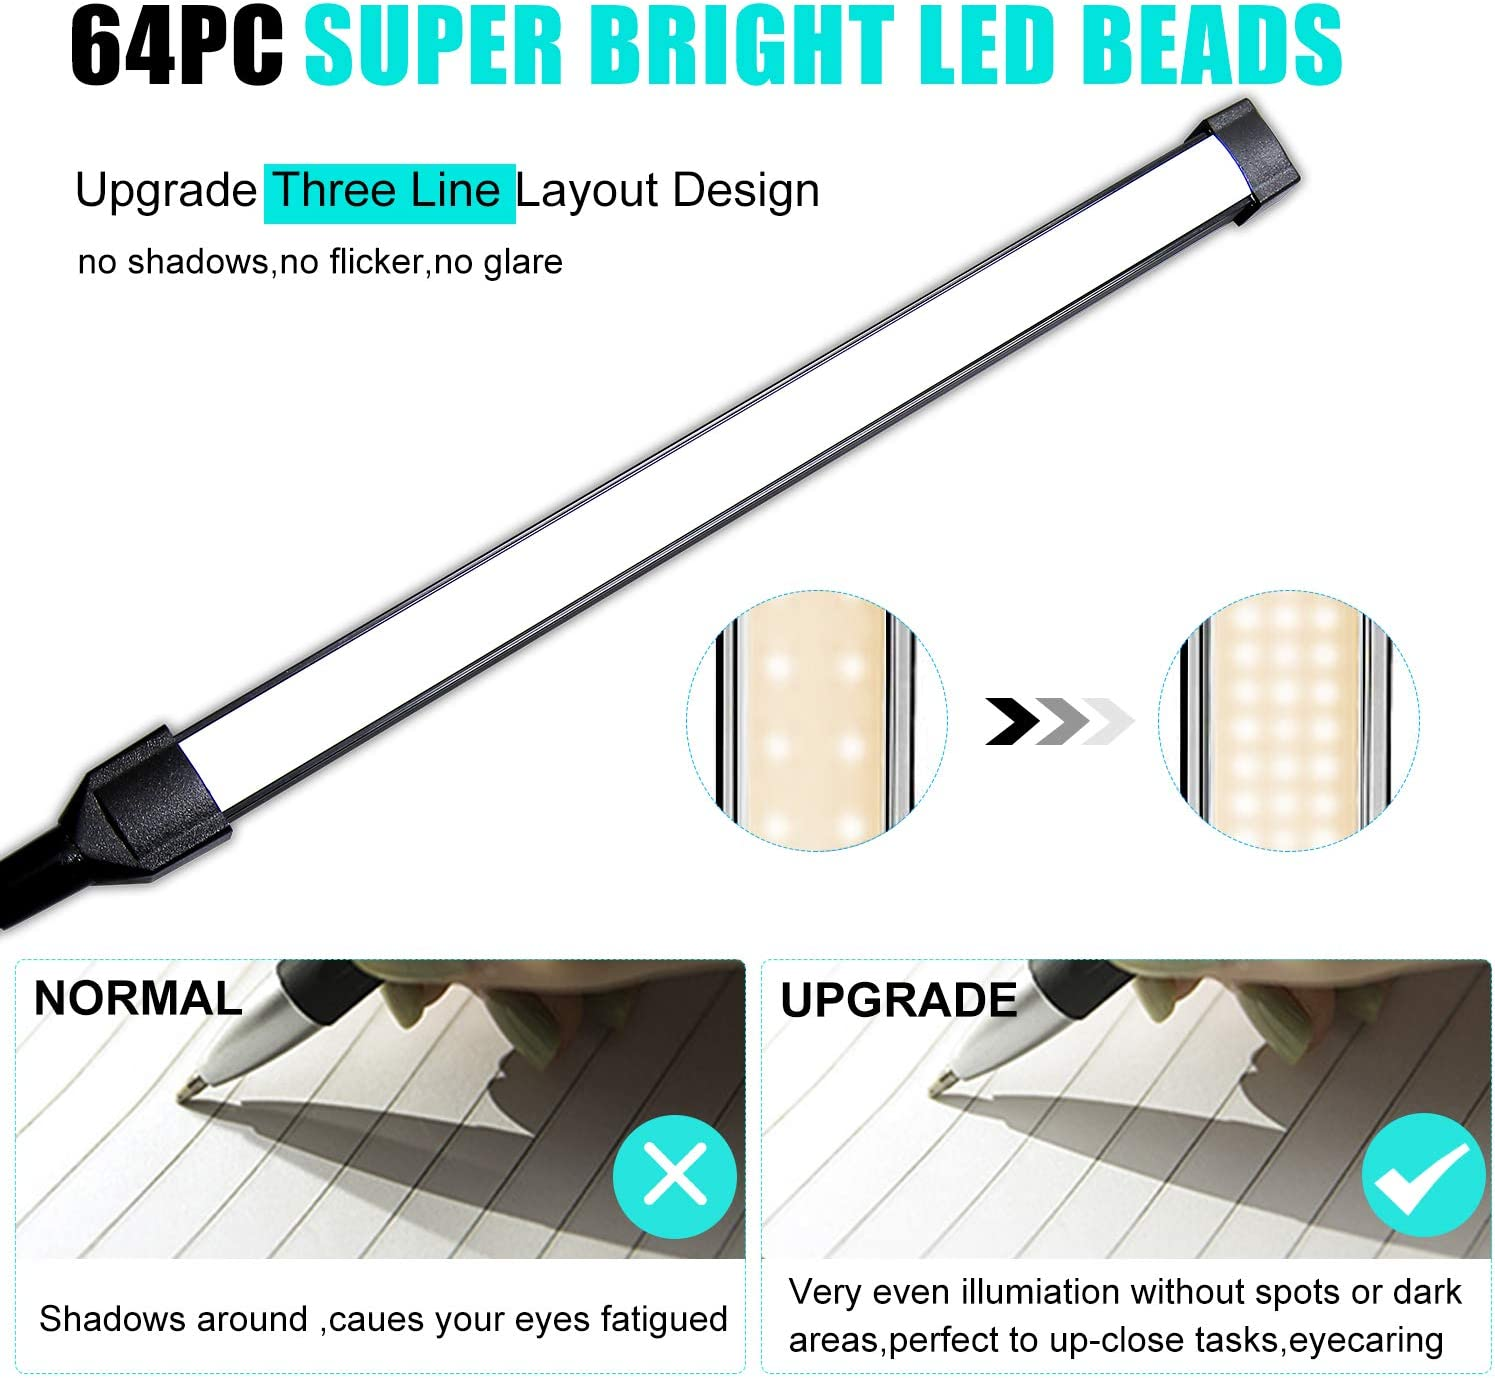 Upgrade Led Clip On Light, 33 Illuminations Kids Book Lights for Reading in Bed, Desk Lamps with USB Charging Port, Clamp Light Bedbesides Headborard, Stepless Dimmer/ Auto Memory/Off Delayer - -